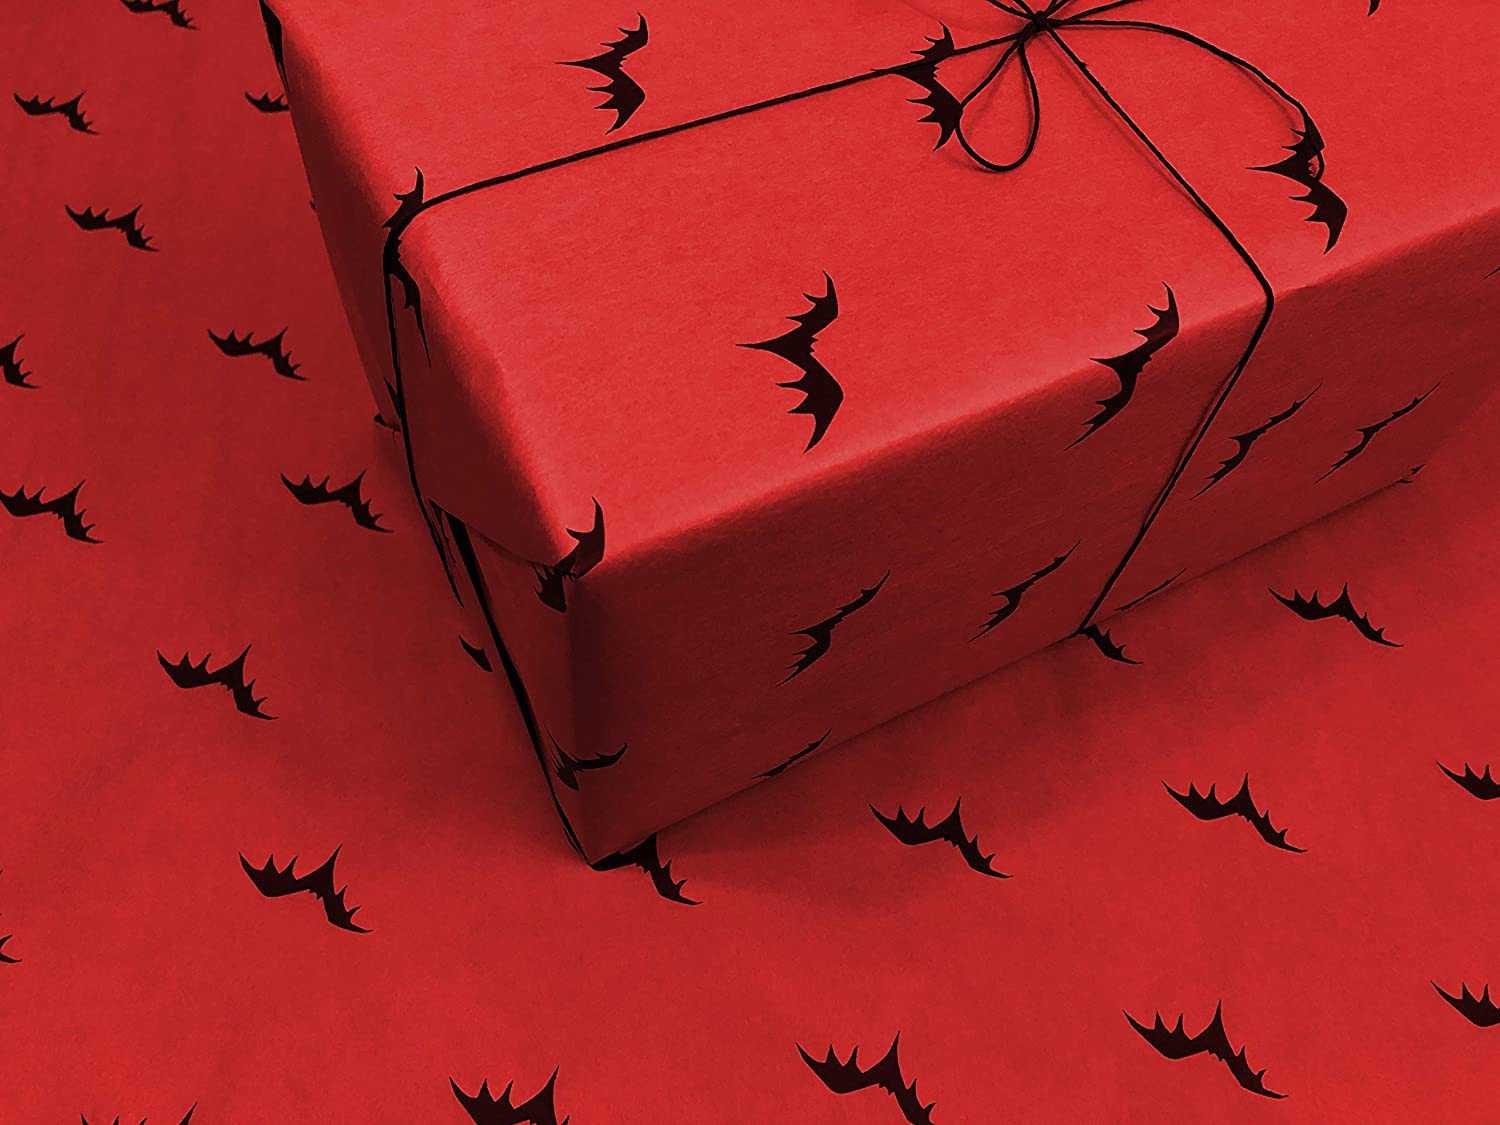 3 Pack! Assorted Gothic Wrapping Paper - Red Flying Bats, Purple Eyes and Green Spooky Black Lines - 3 Rolls of Handmade Gift Wrap